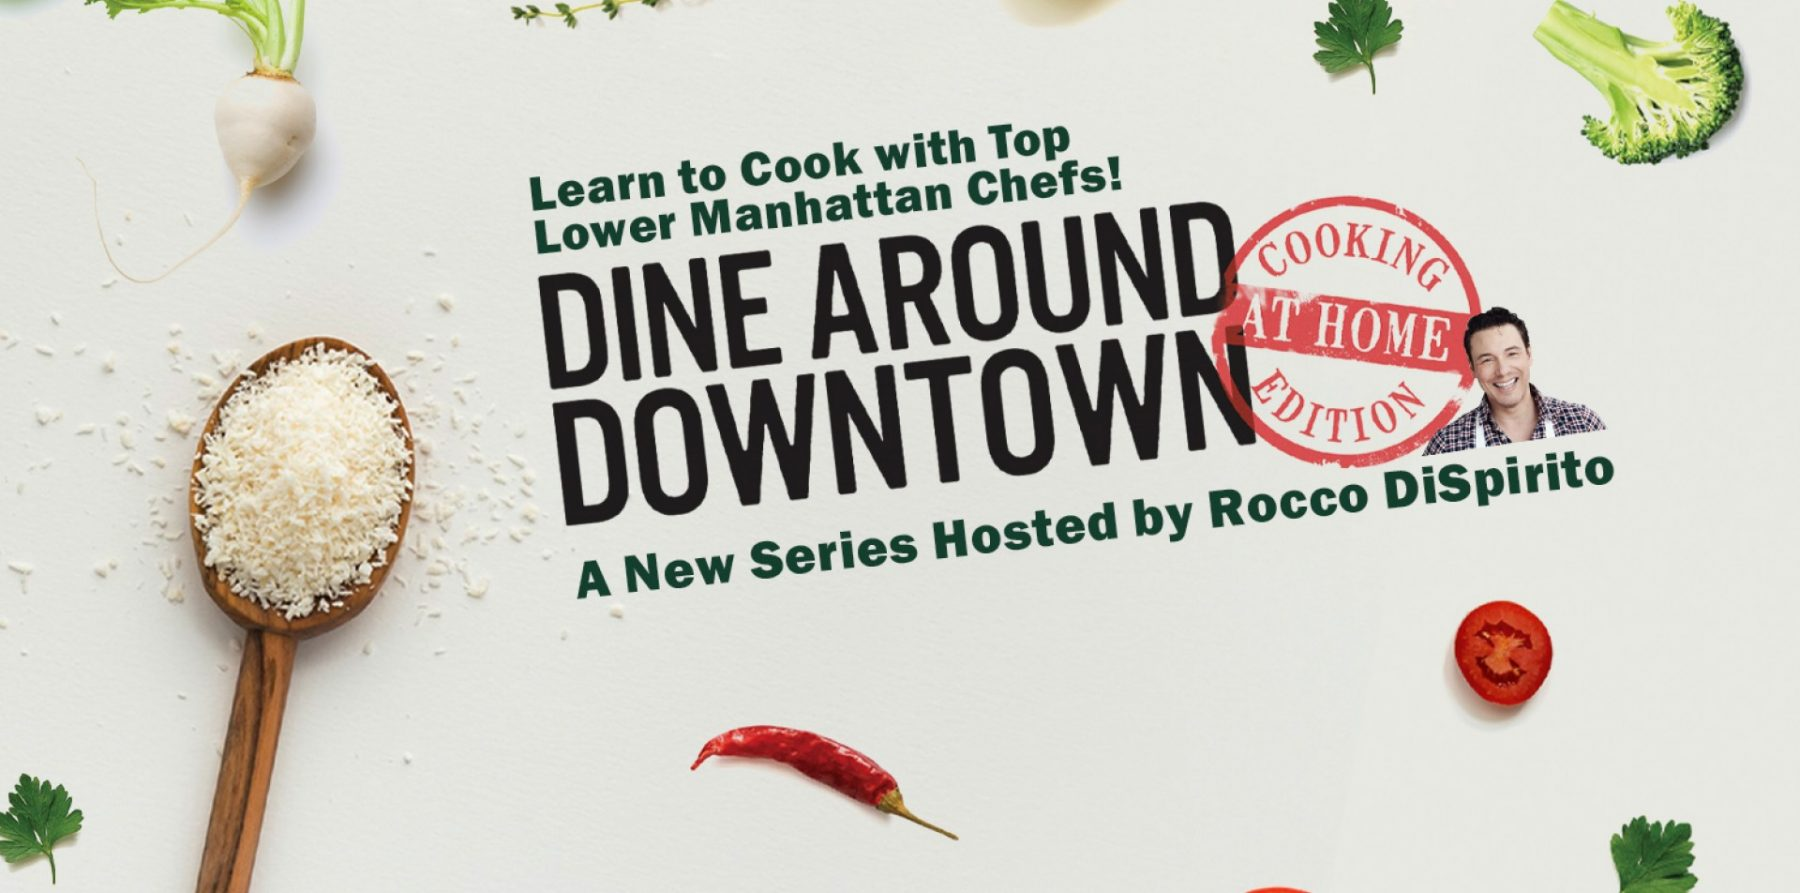 Dine Around Downtown Web Series: Learn Recipes from Top Chefs